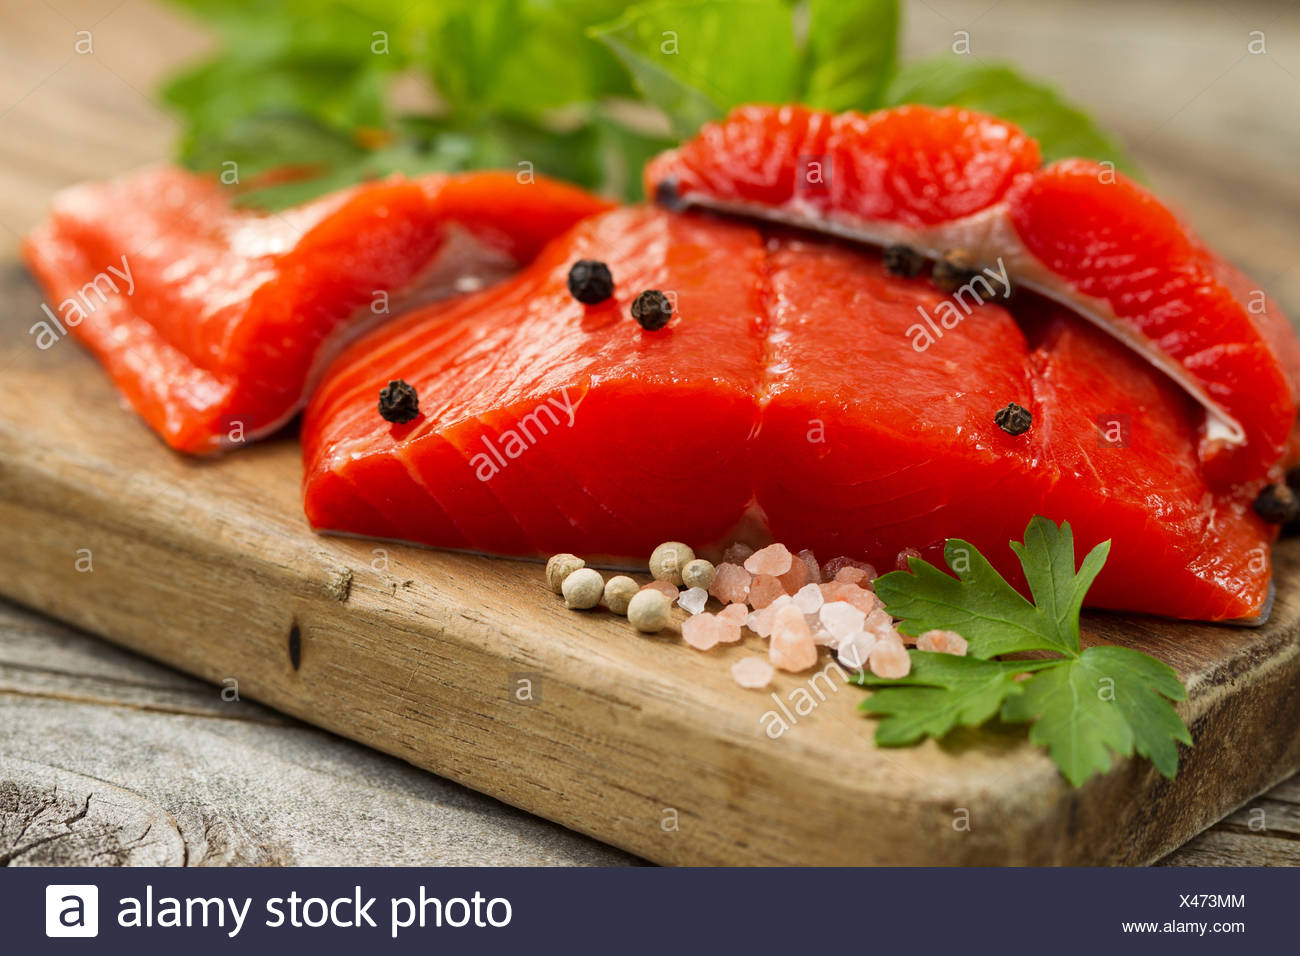 Fresh Copper River Salmon fillets on rustic wooden server with spices and herbs - Stock Image